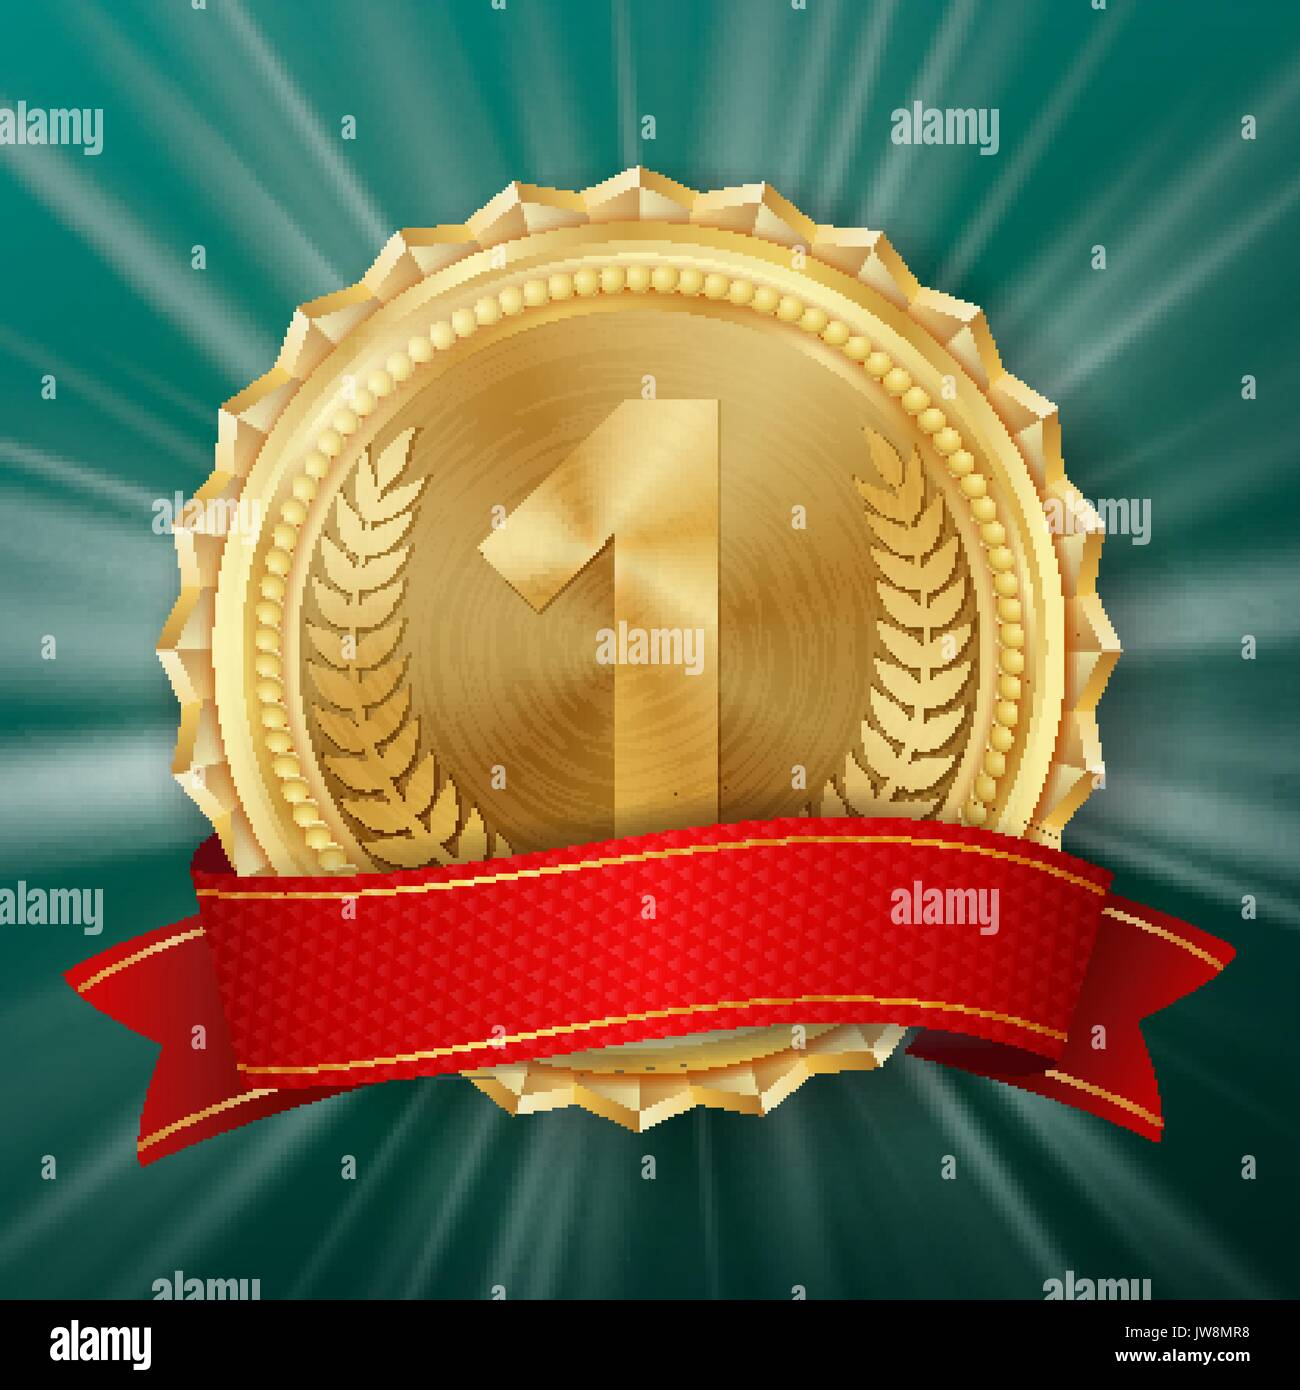 Gold Medal Vector. Golden 1st Place Badge. Metallic Winner Award. Red Ribbon. Olive Branch. Realistic illustration. - Stock Image